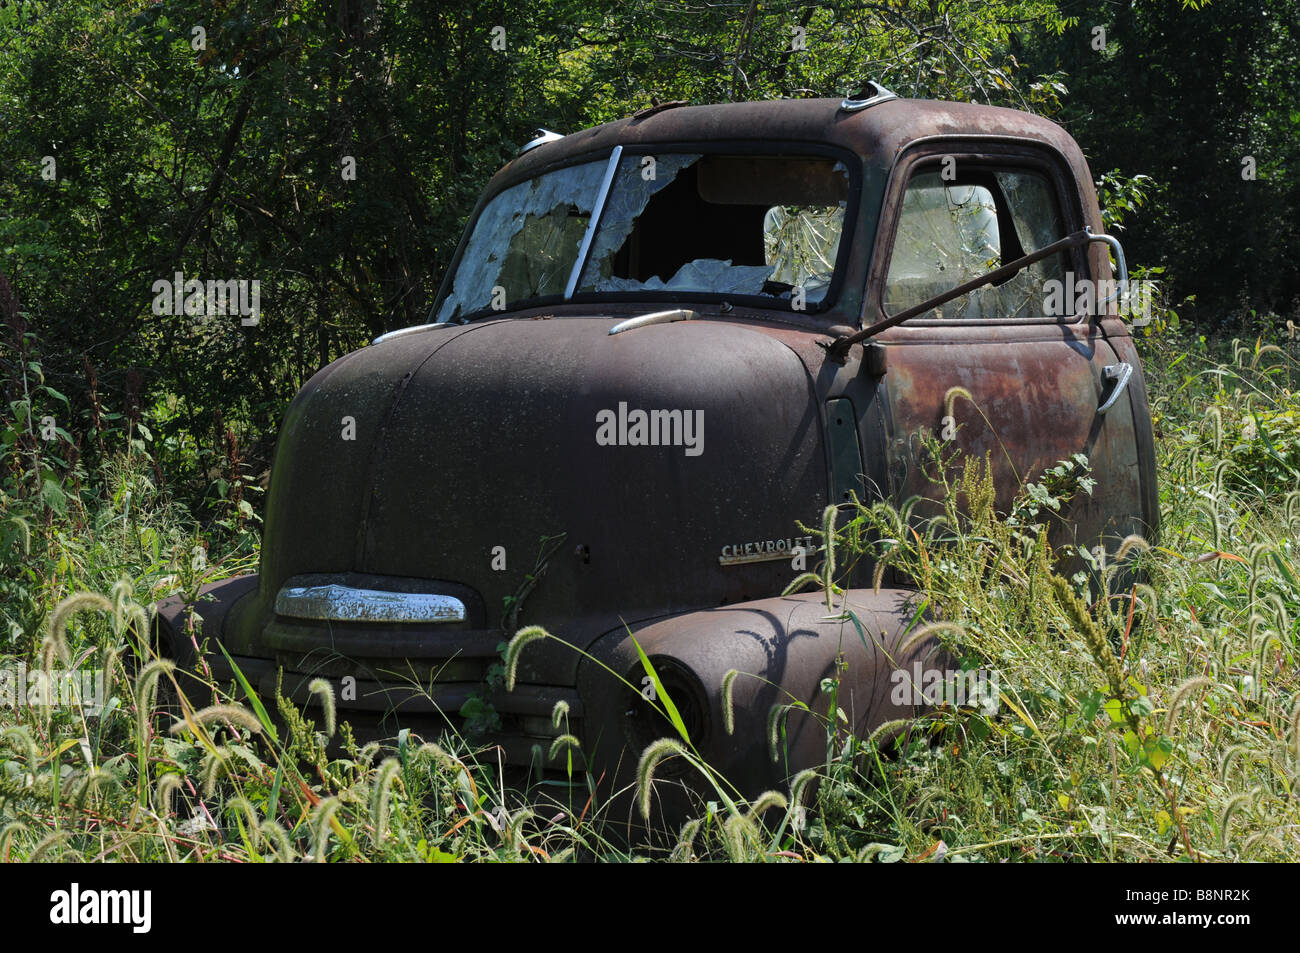 Old stub nose truck Chevrolet USA - Stock Image